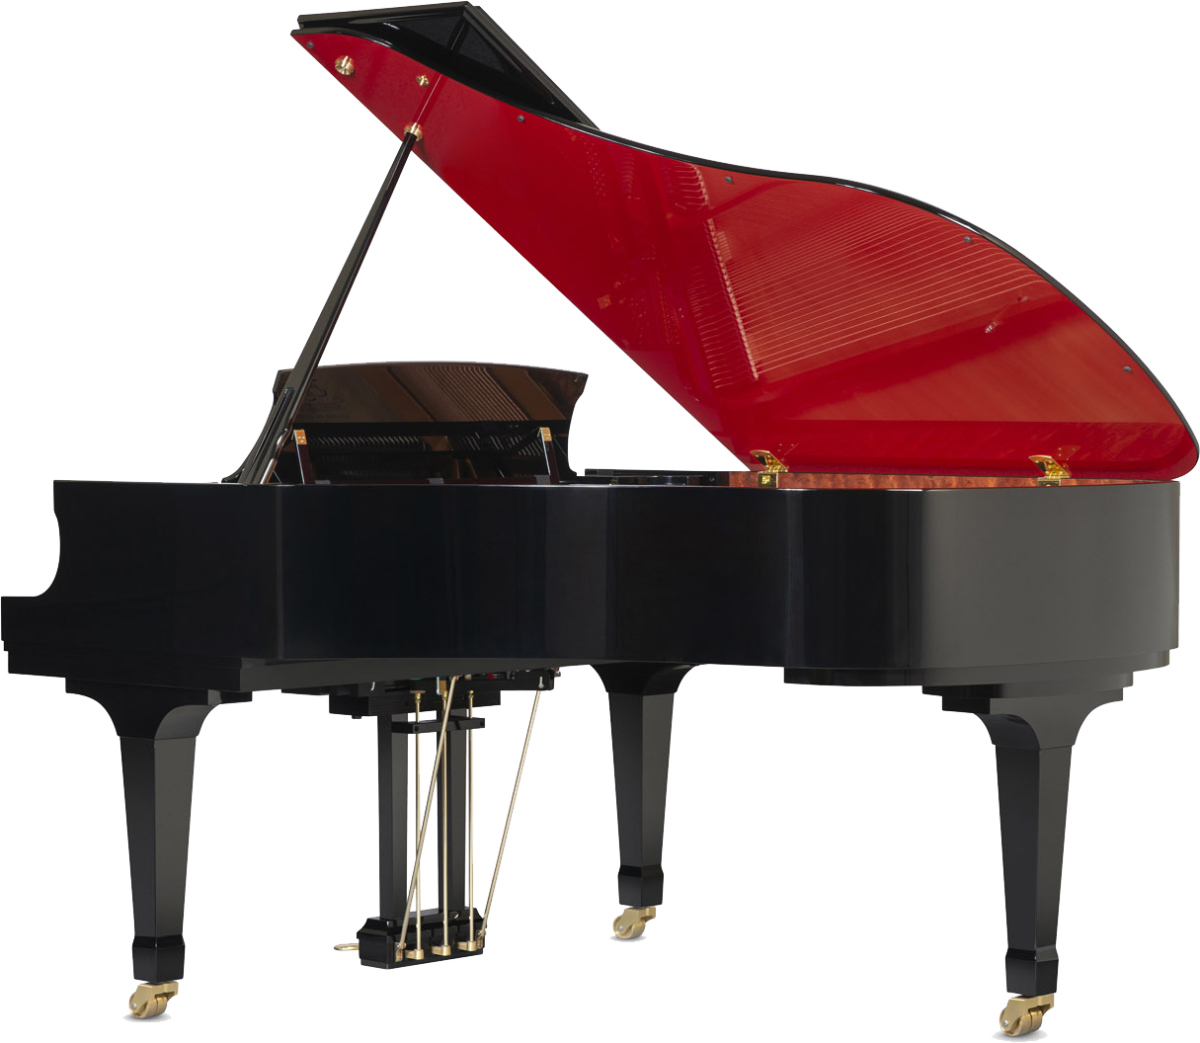 piano-cola-boston-gp178-profesional-nuevo-edicion-especial-rainbow-performance-edition-rojo-trasera-02